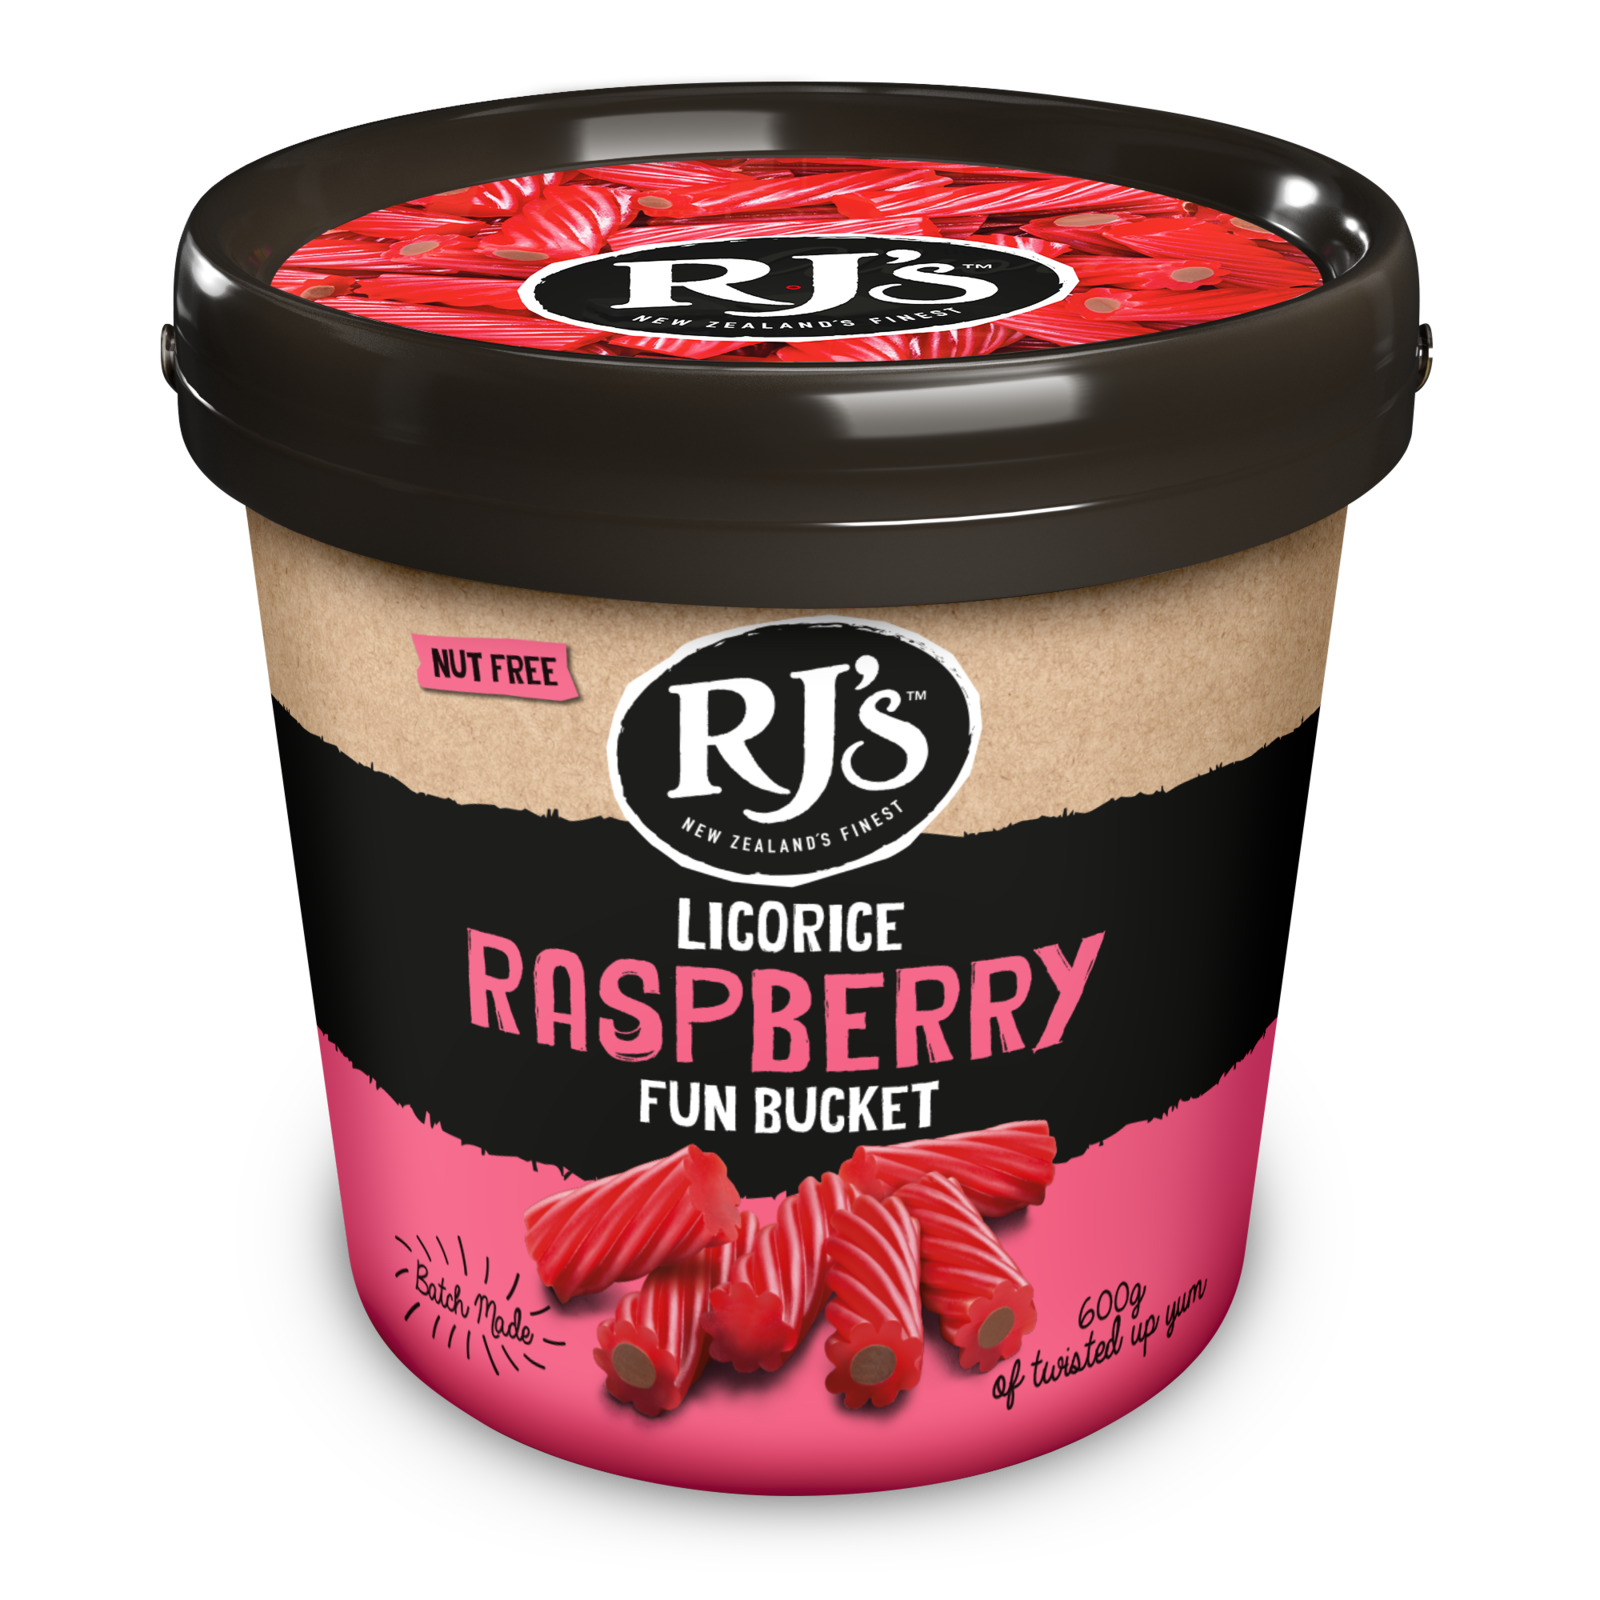 RJ's Licorice Raspberry Fun Bucket 600g image